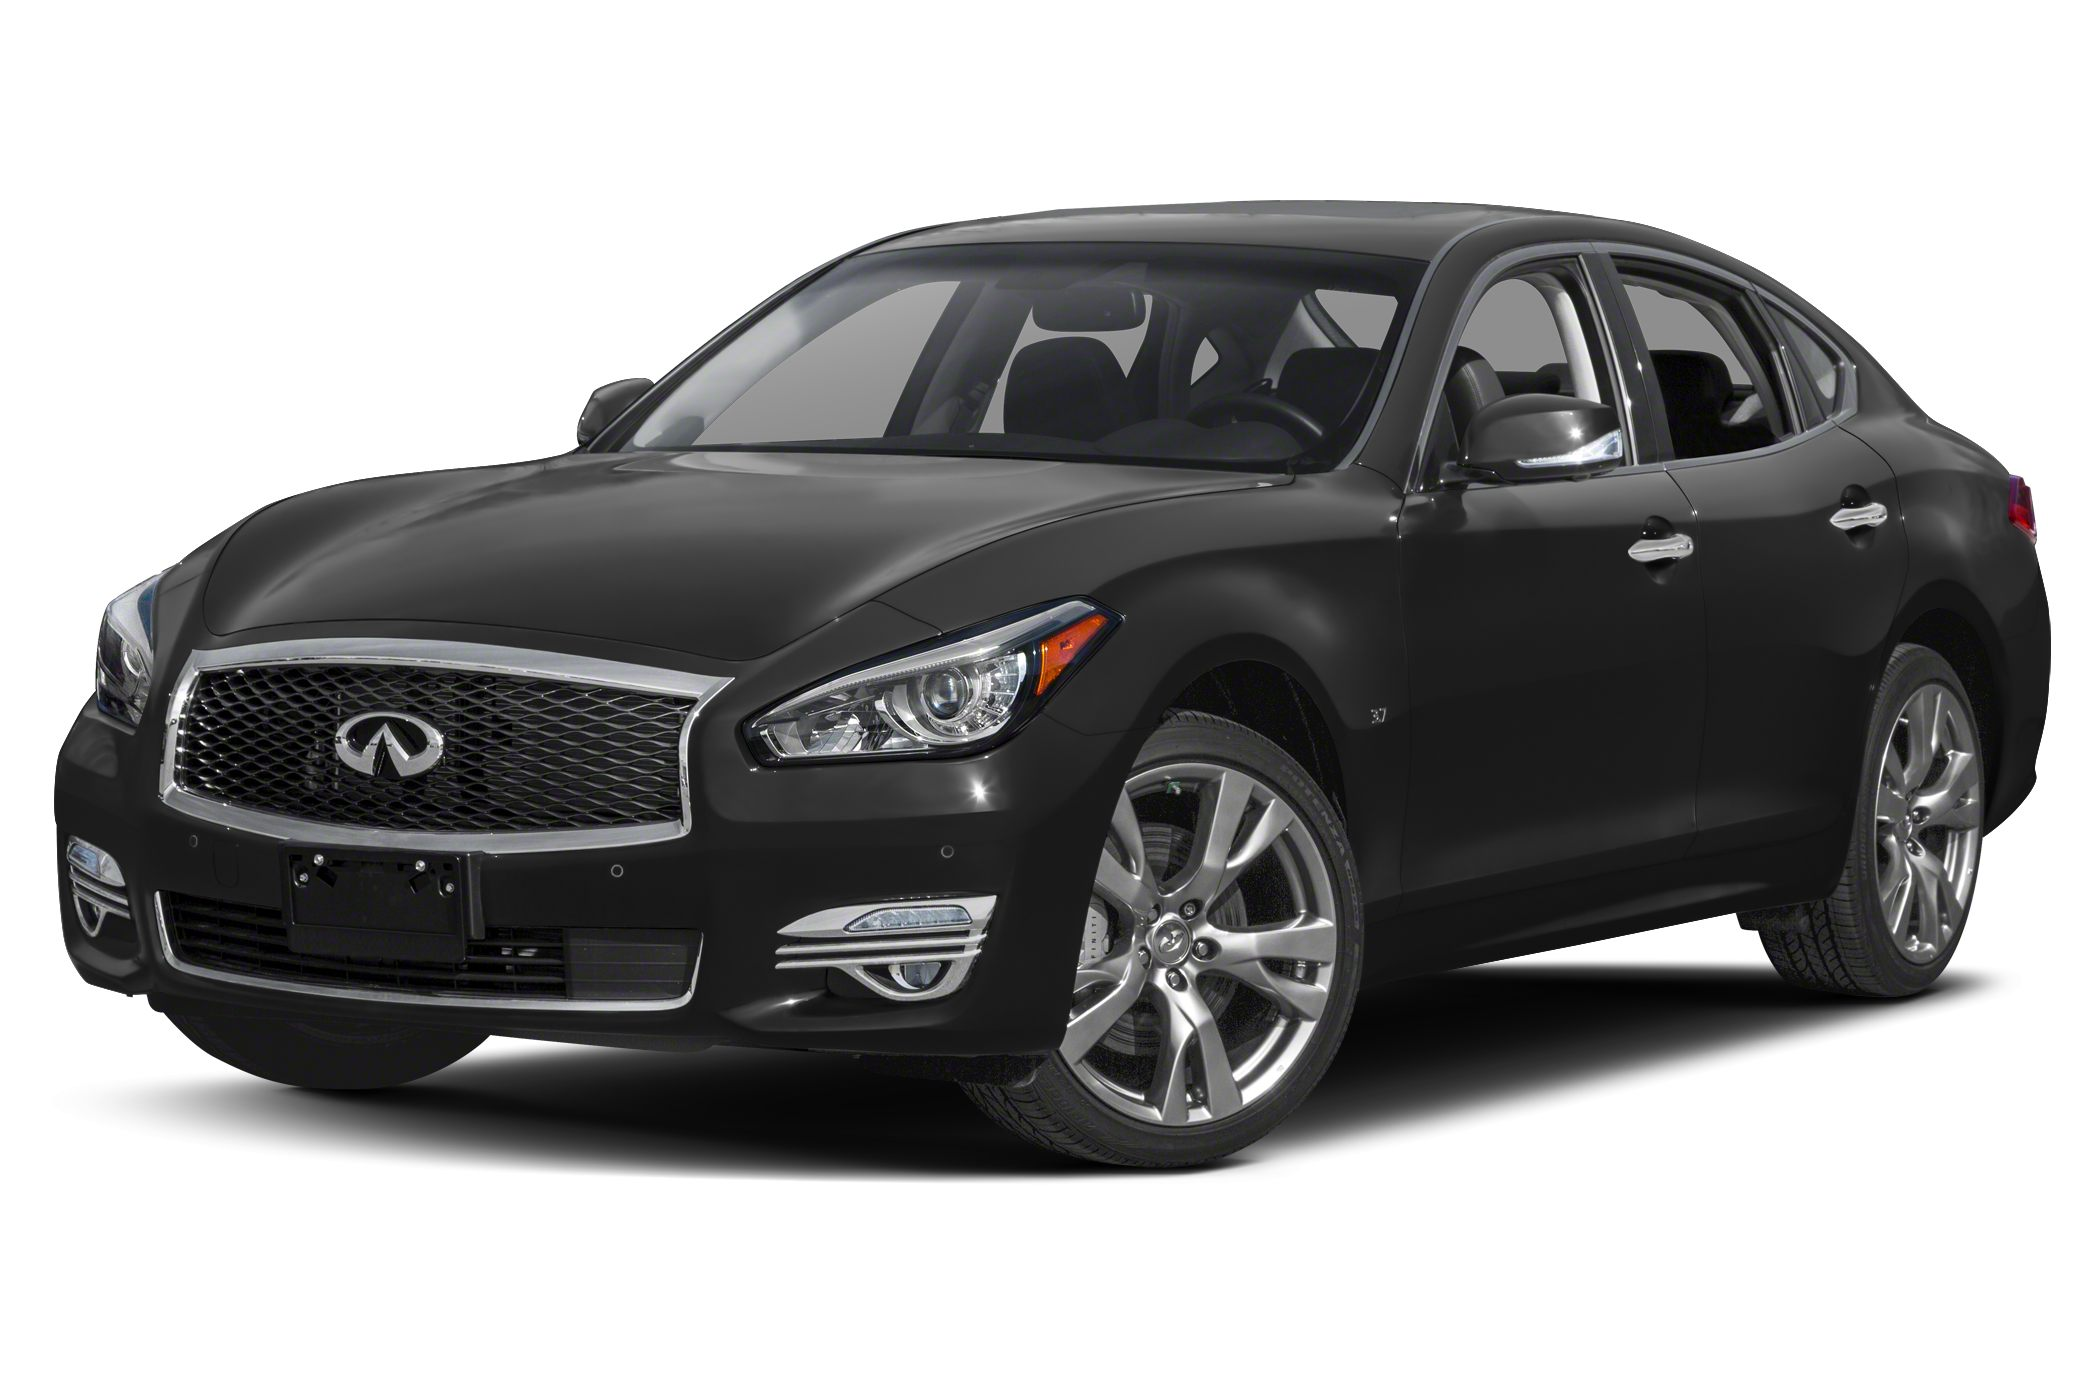 2015 infiniti q70l autoblog. Black Bedroom Furniture Sets. Home Design Ideas